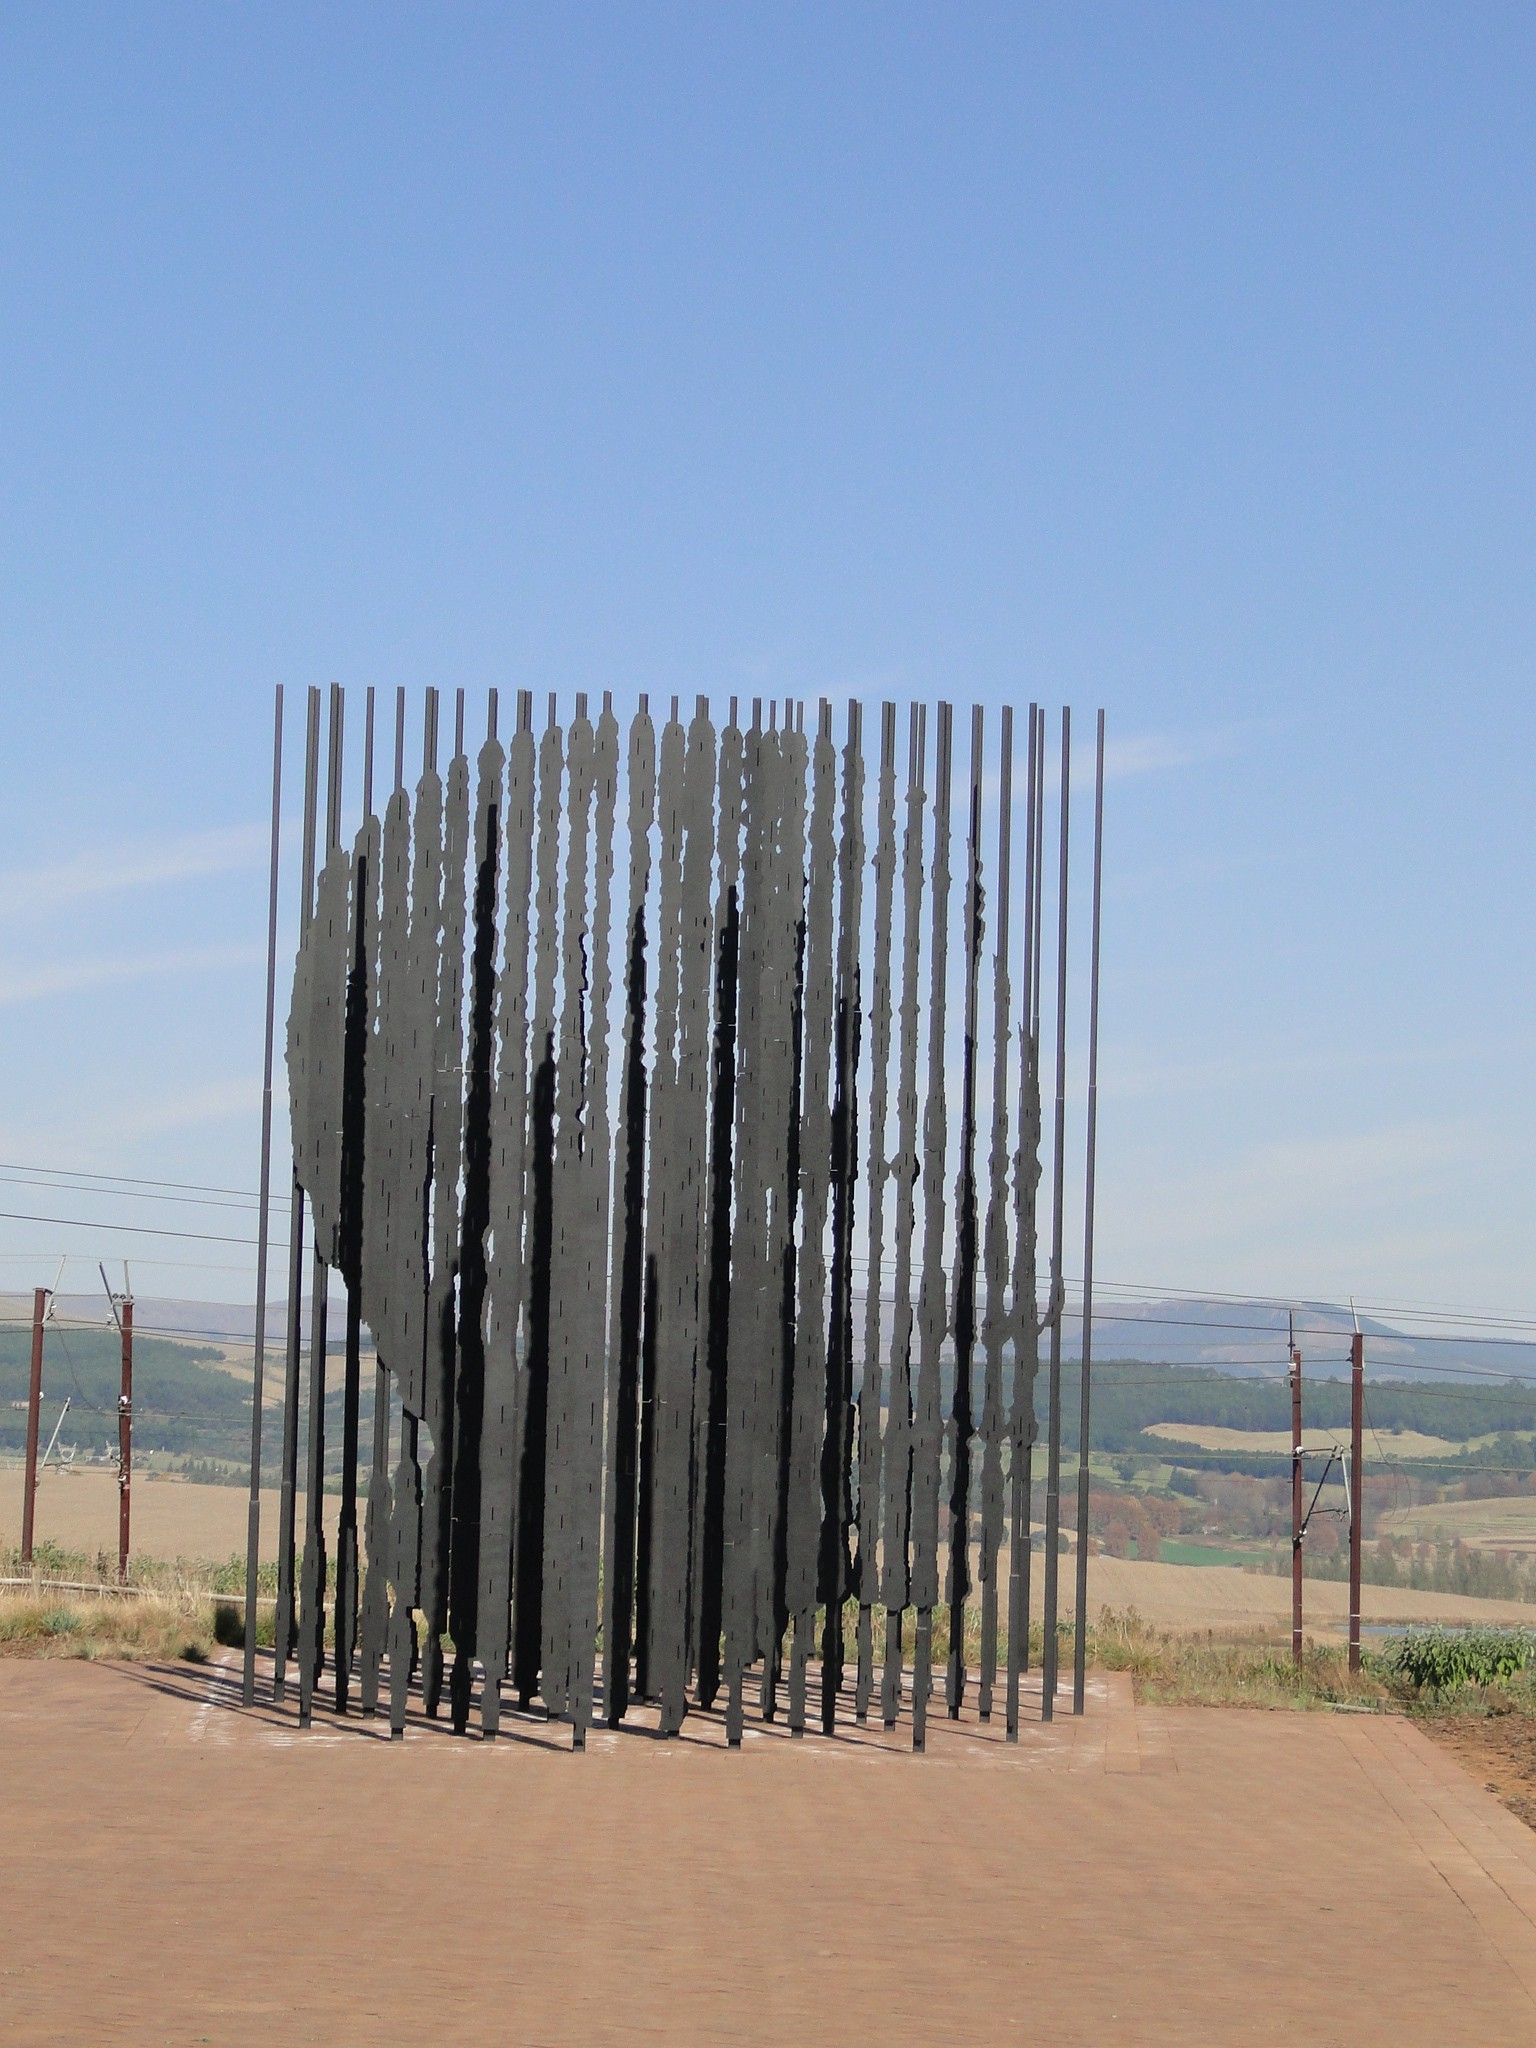 The stunning sculpture at the Nelson Mandela Capture Site near Howick. Photo by Karla J. Strand. All rights reserved.